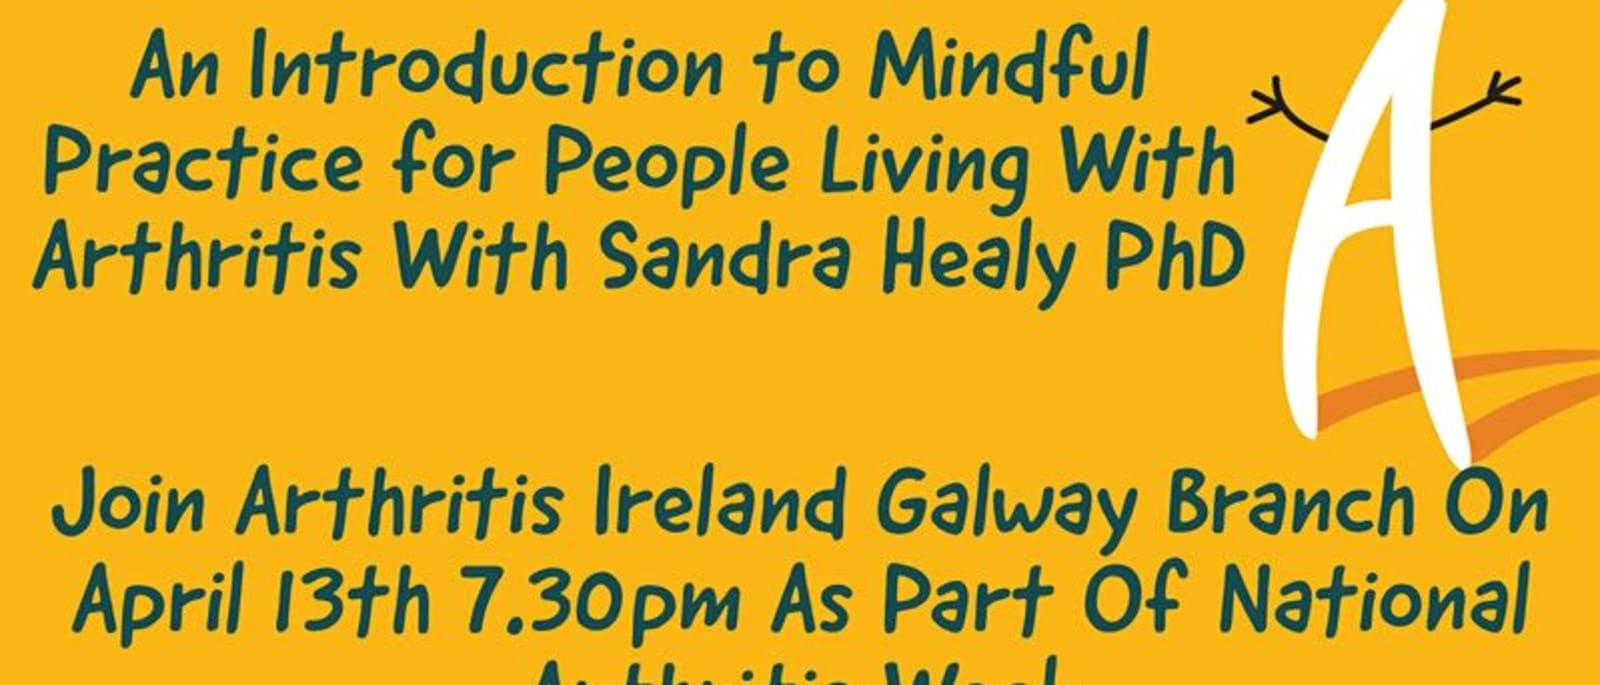 Introduction to mindful practice with Sandra Healy